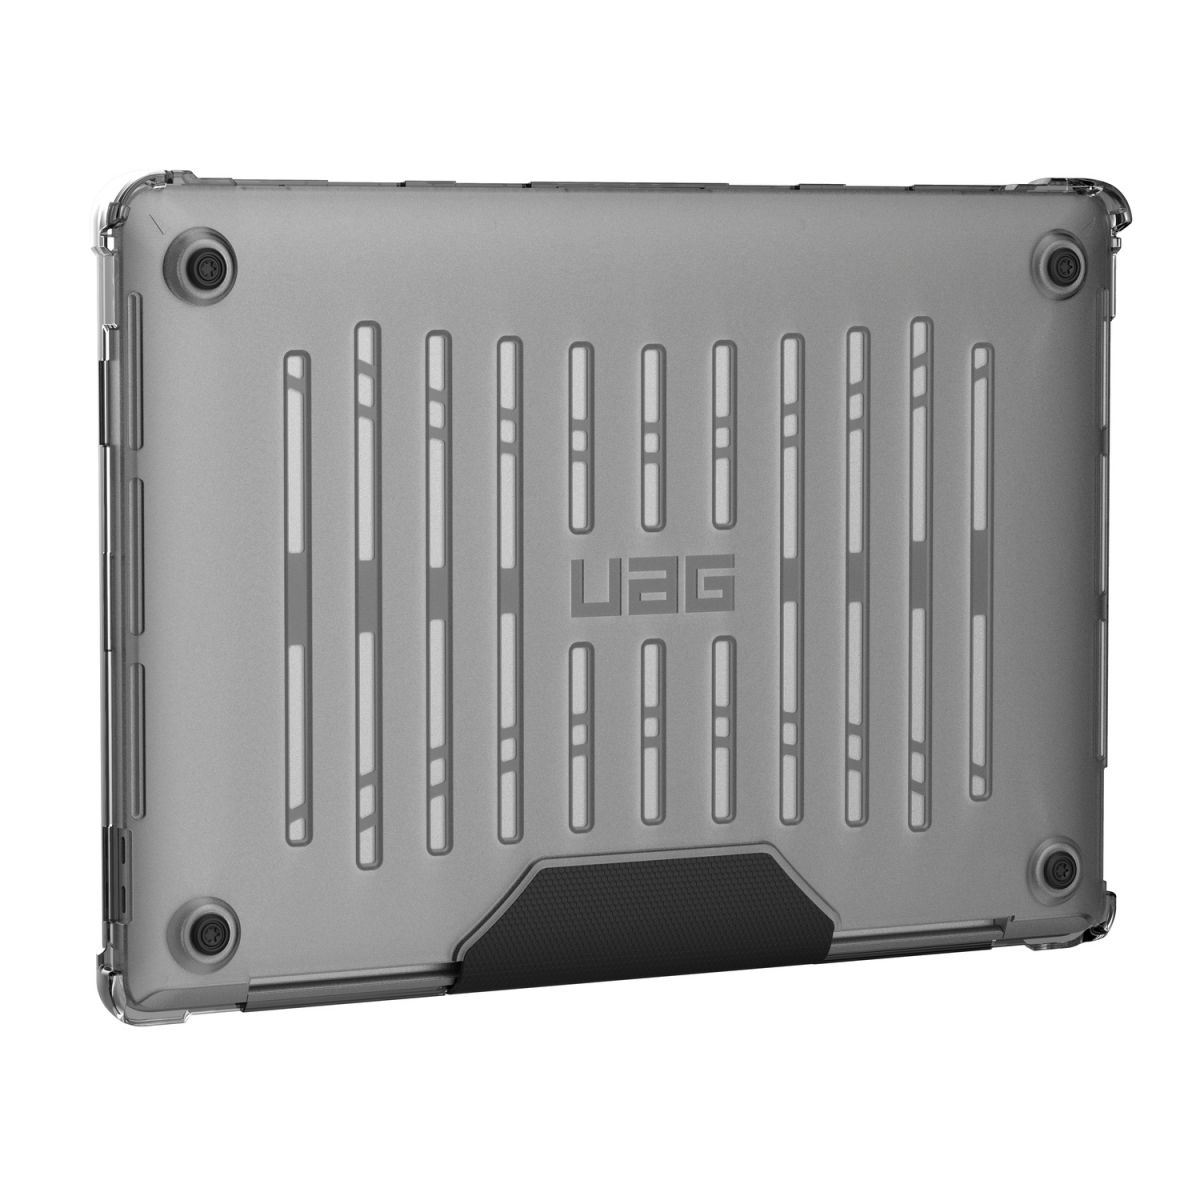 uag laptop case macbook pro 16 inch plyo ice transparant